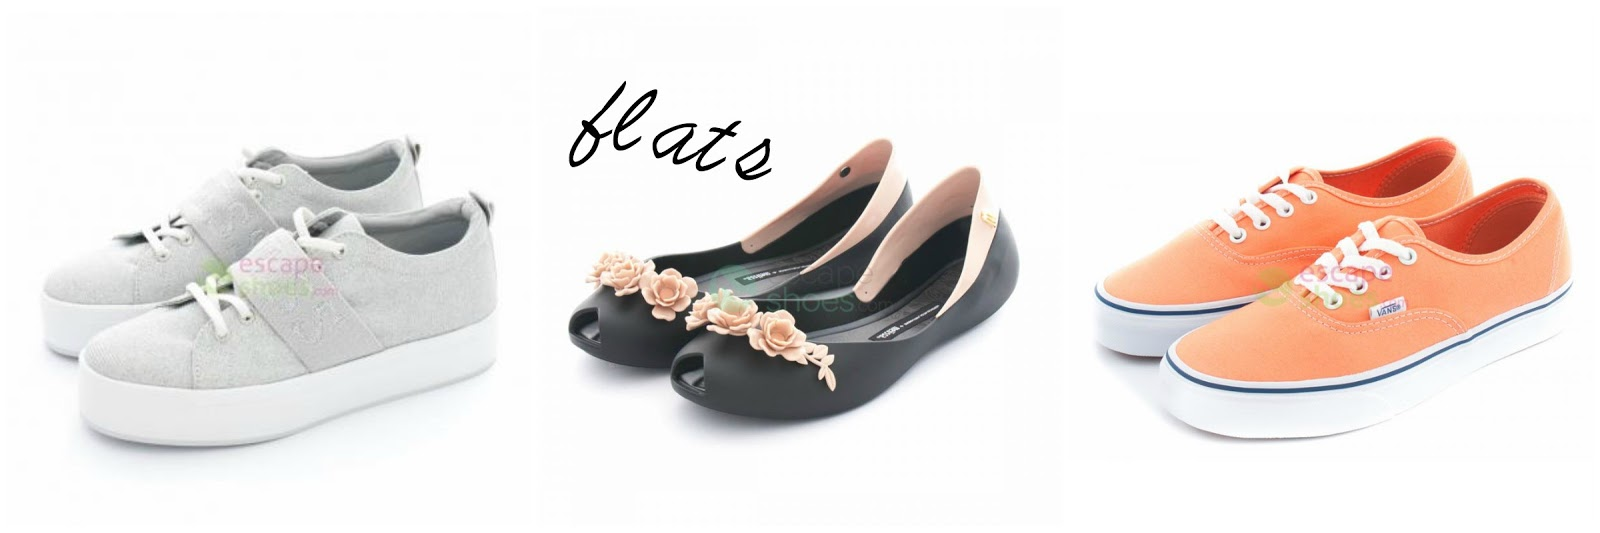 escapeshoes shoes online store flats